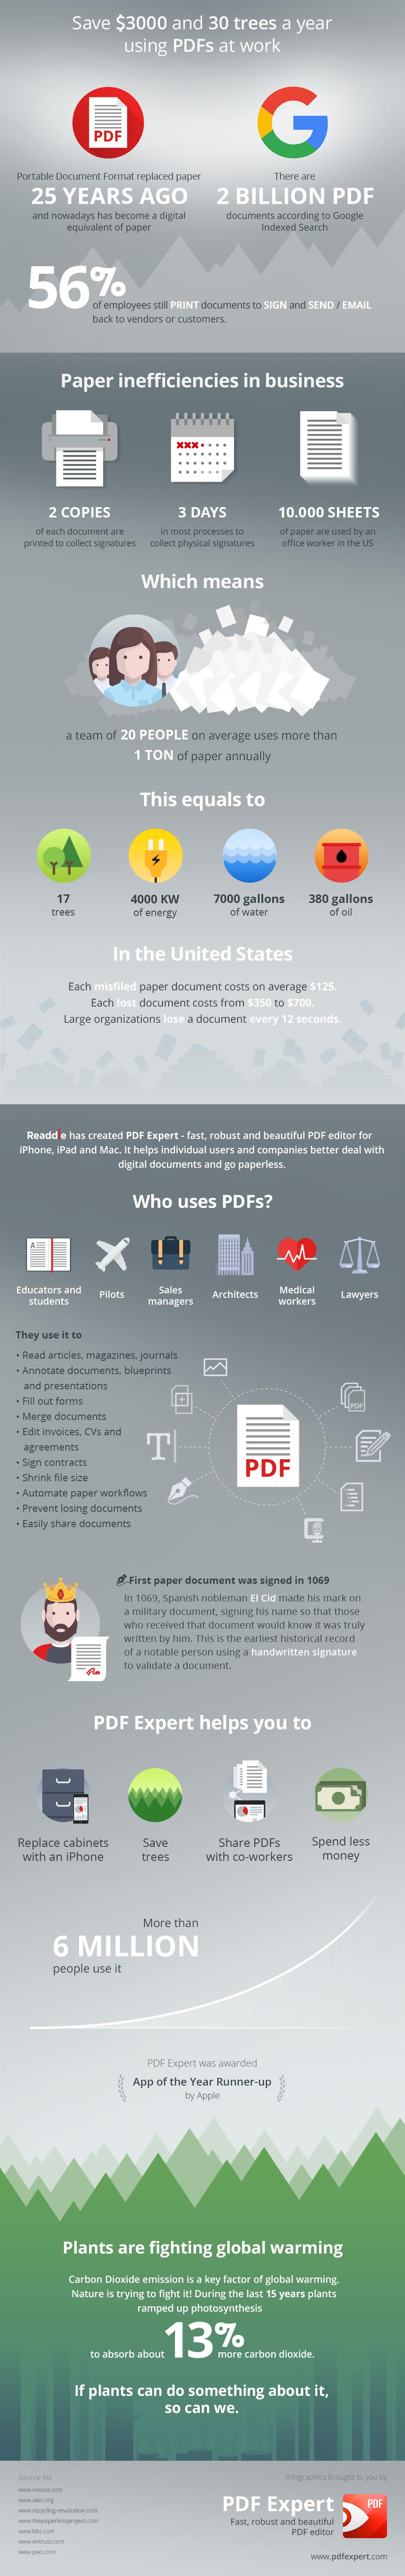 Infographic: Save $3,000 and 30 Trees a Year by Using PDF Documents in Place of Paper at Work